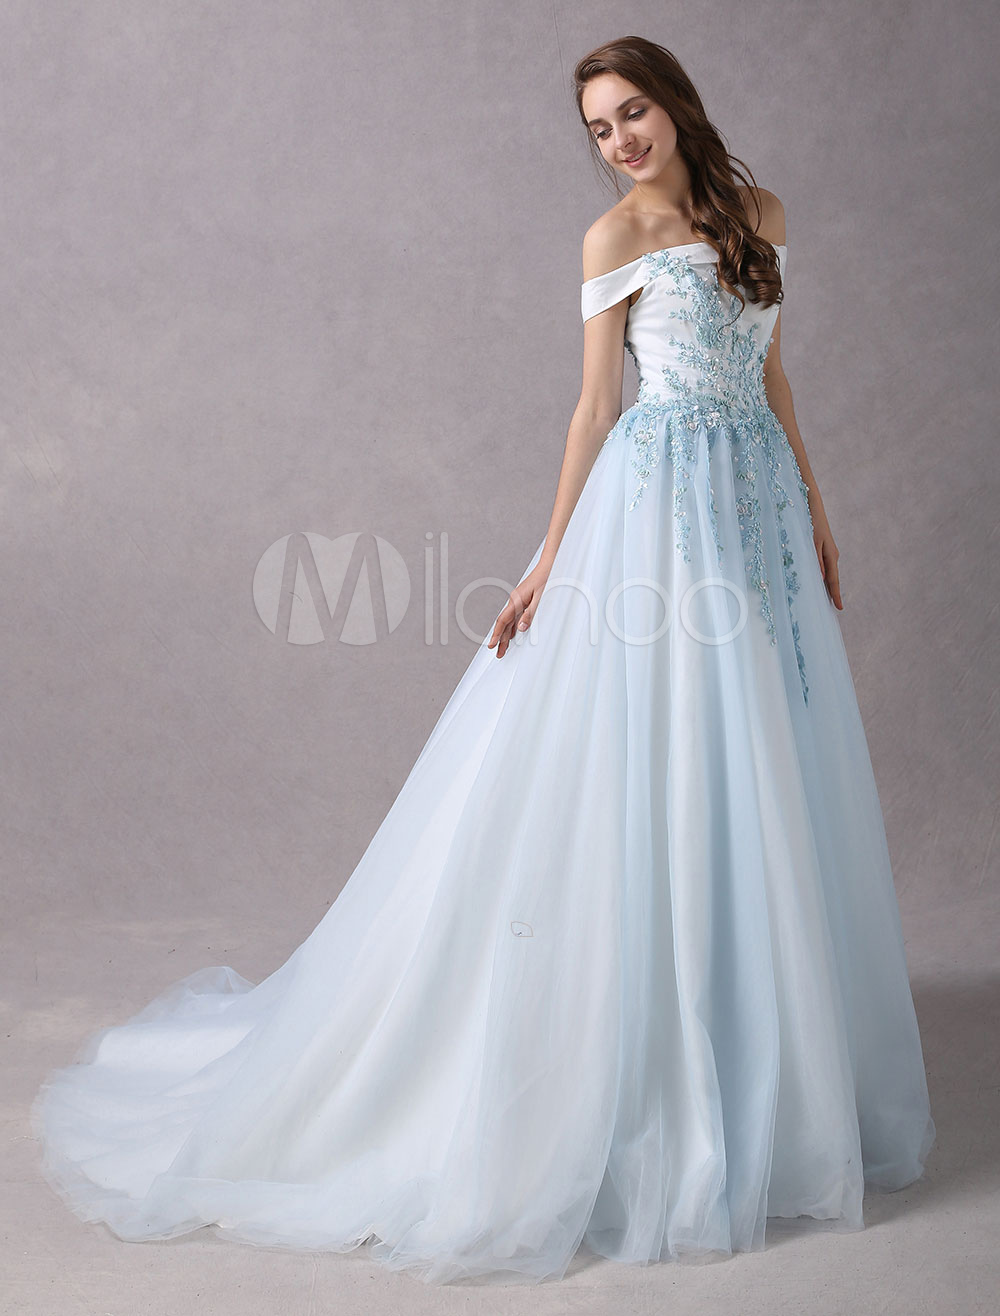 Prom Gown Off The Shoulder Prom Dresses Long Lace Applique Beading Pastel Blue Princess Dresses With Train